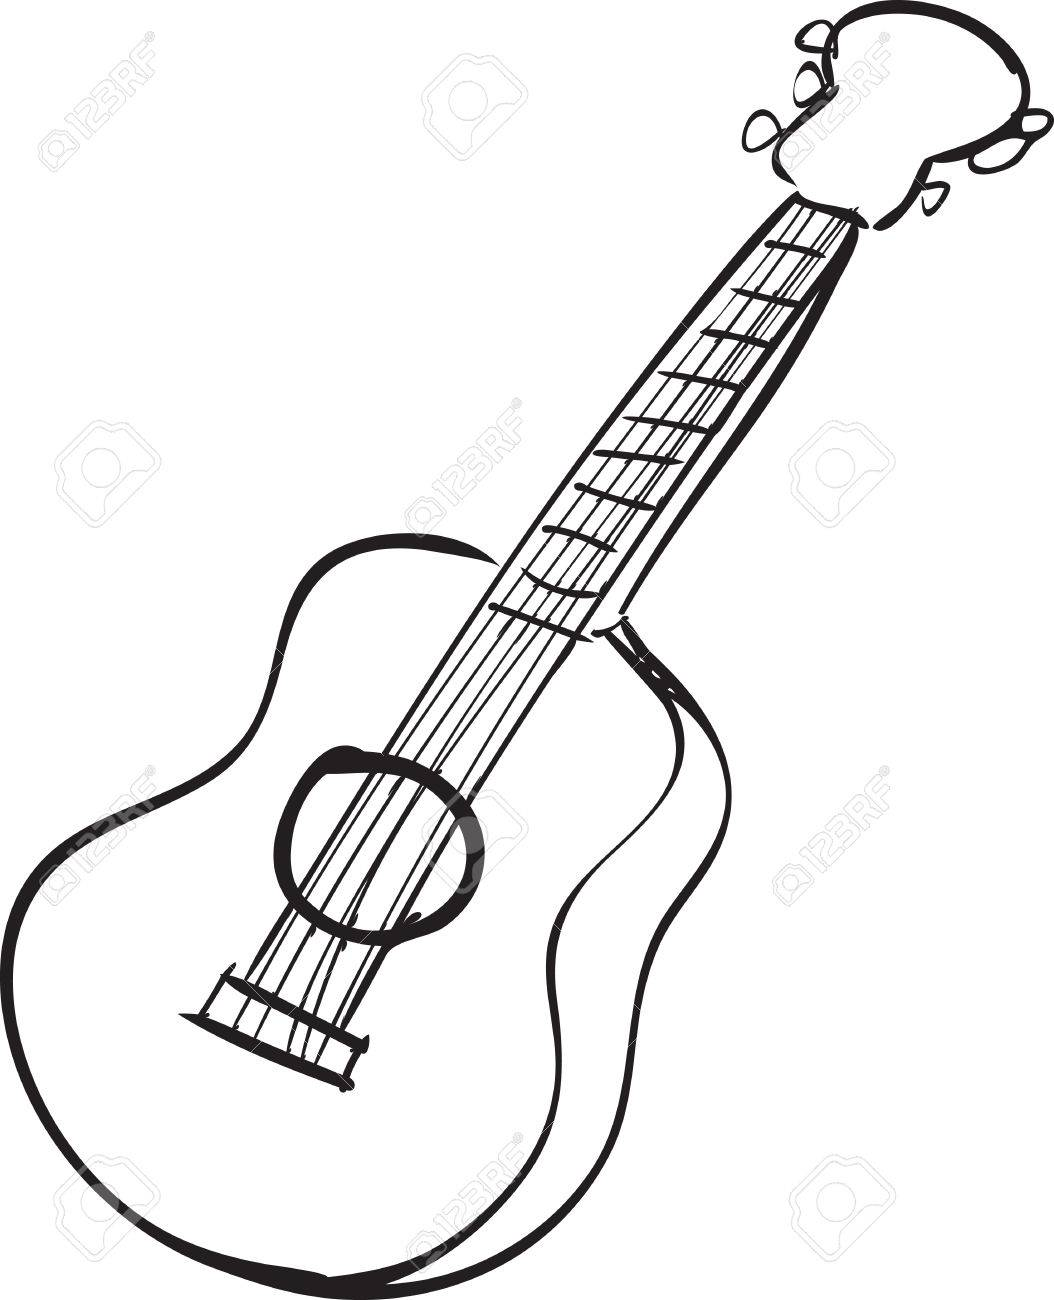 1054x1300 Vector Illustration Of Guitar In Black And White Doodle Sketch